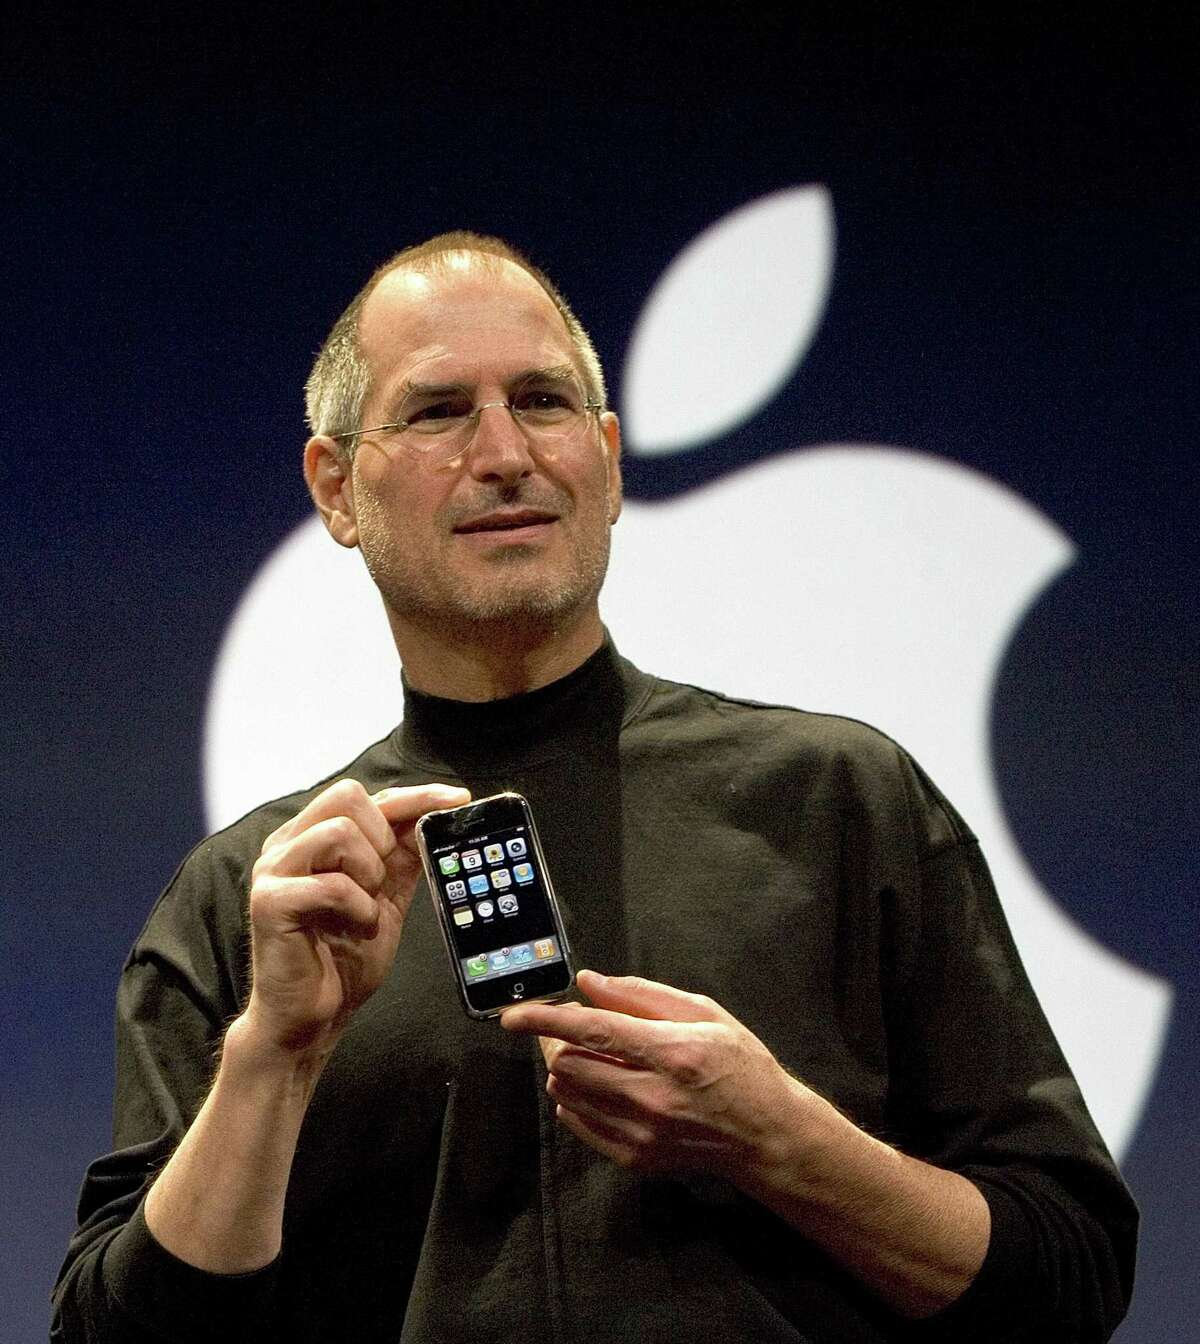 SAN FRANCISCO, CA - FILE: Apple CEO Steve Jobs holds up the new iPhone that was introduced at Macworld on January 9, 2007 in San Francisco, California. Jobs, 56, passed away October 5, 2011 after a long battle with pancreatic cancer. Jobs co-founded Apple in 1976 and is credited, along with Steve Wozniak, with marketing the world's first personal computer in addition to the popular iPod, iPhone and iPad. (Photo by David Paul Morris/Getty Images)